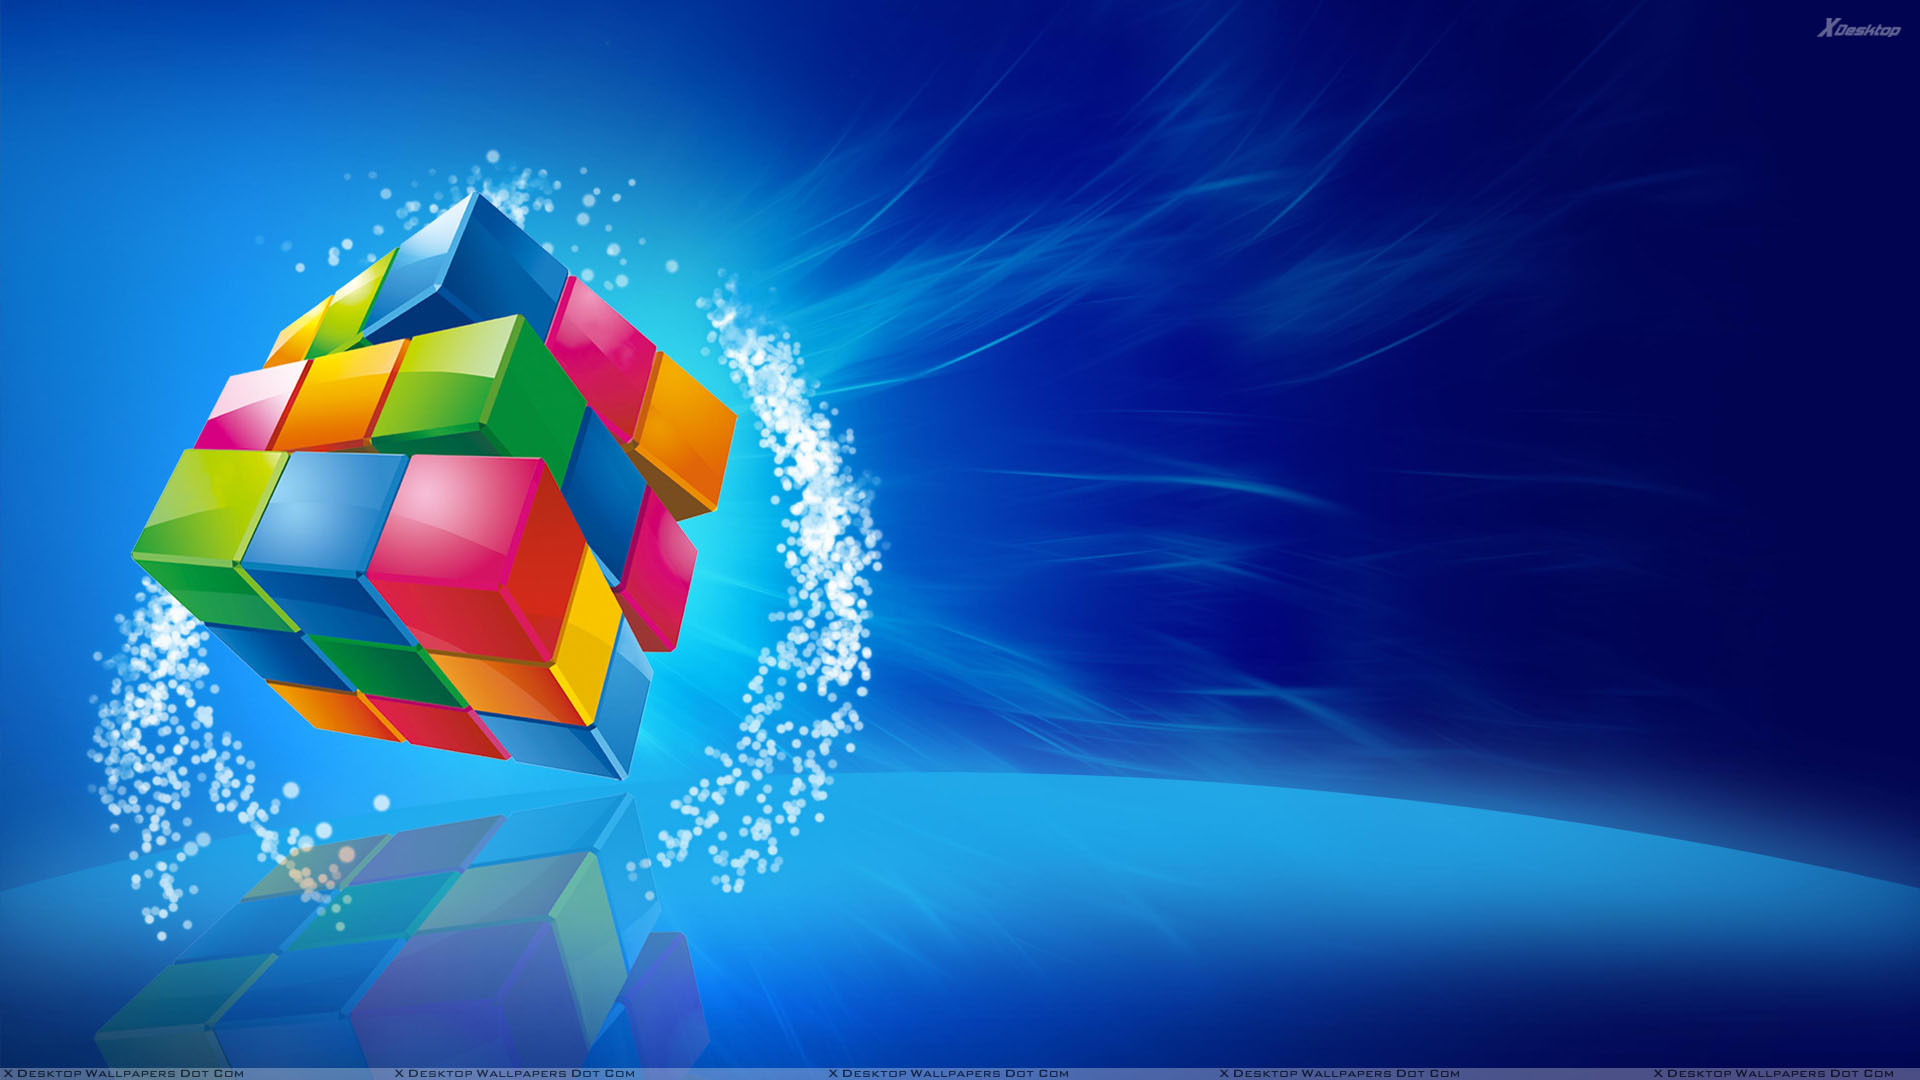 color cube on blue background wallpaper